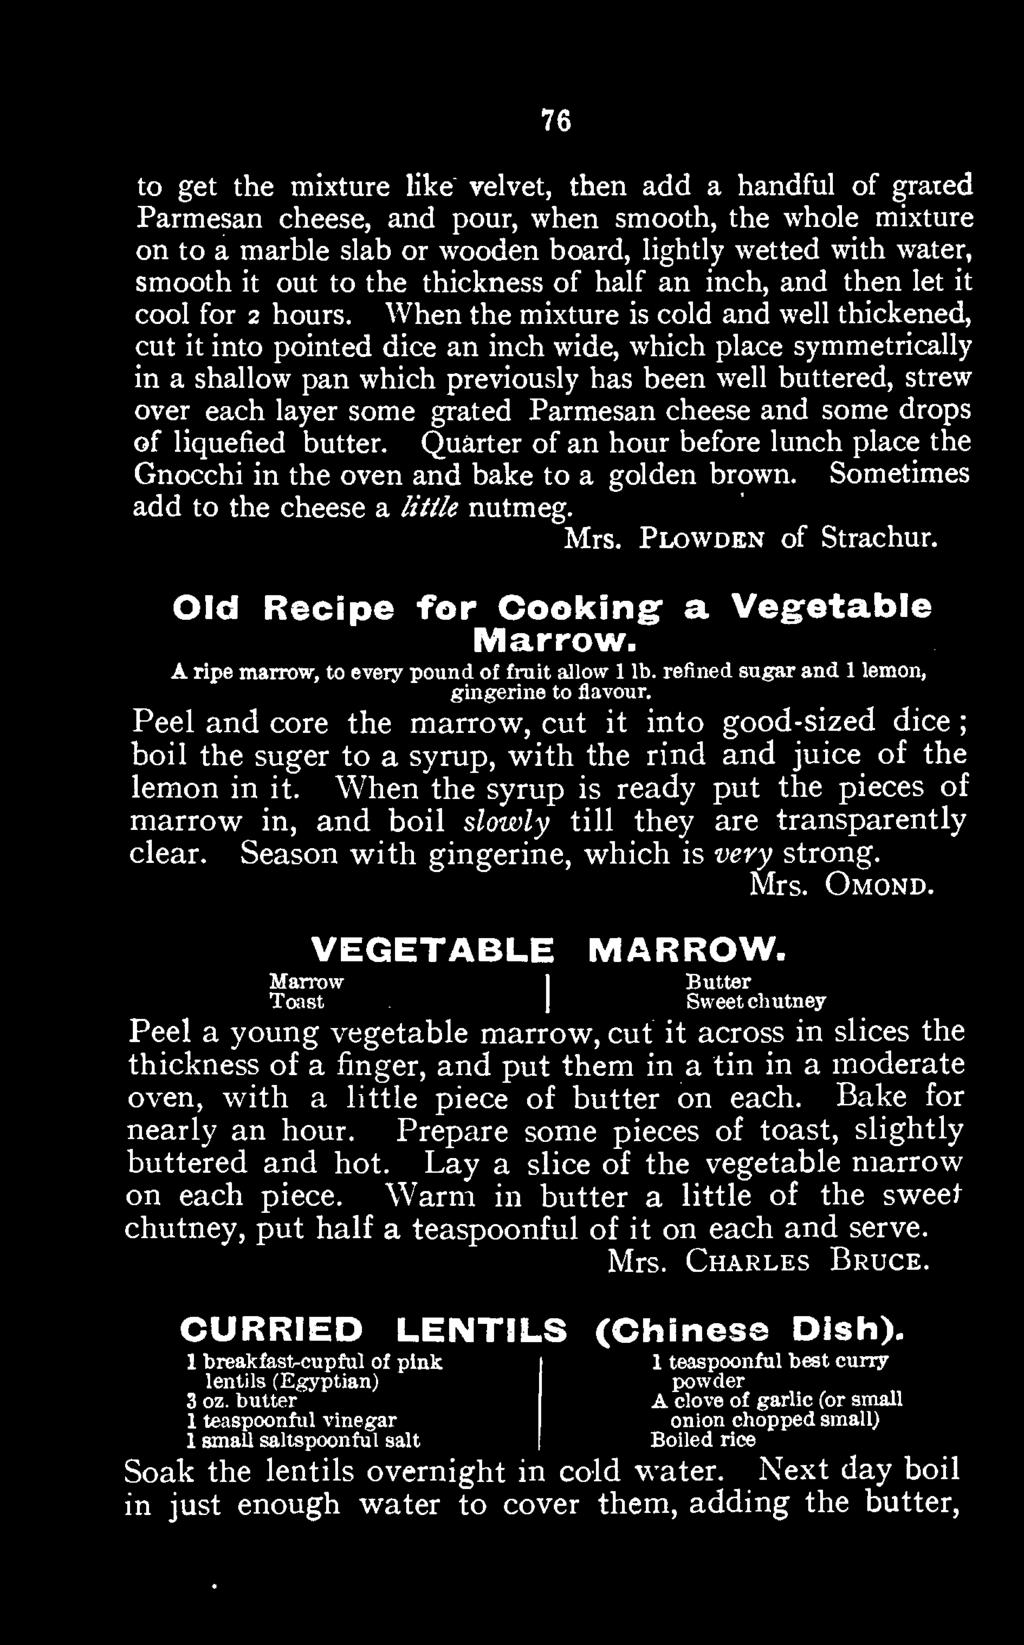 Plowden of Strachur. Old Recipe for Cooking: a Vegetable A ripe marrow, to every pound Marrow. gingerine of fruit to allow flavour. 1 lb.